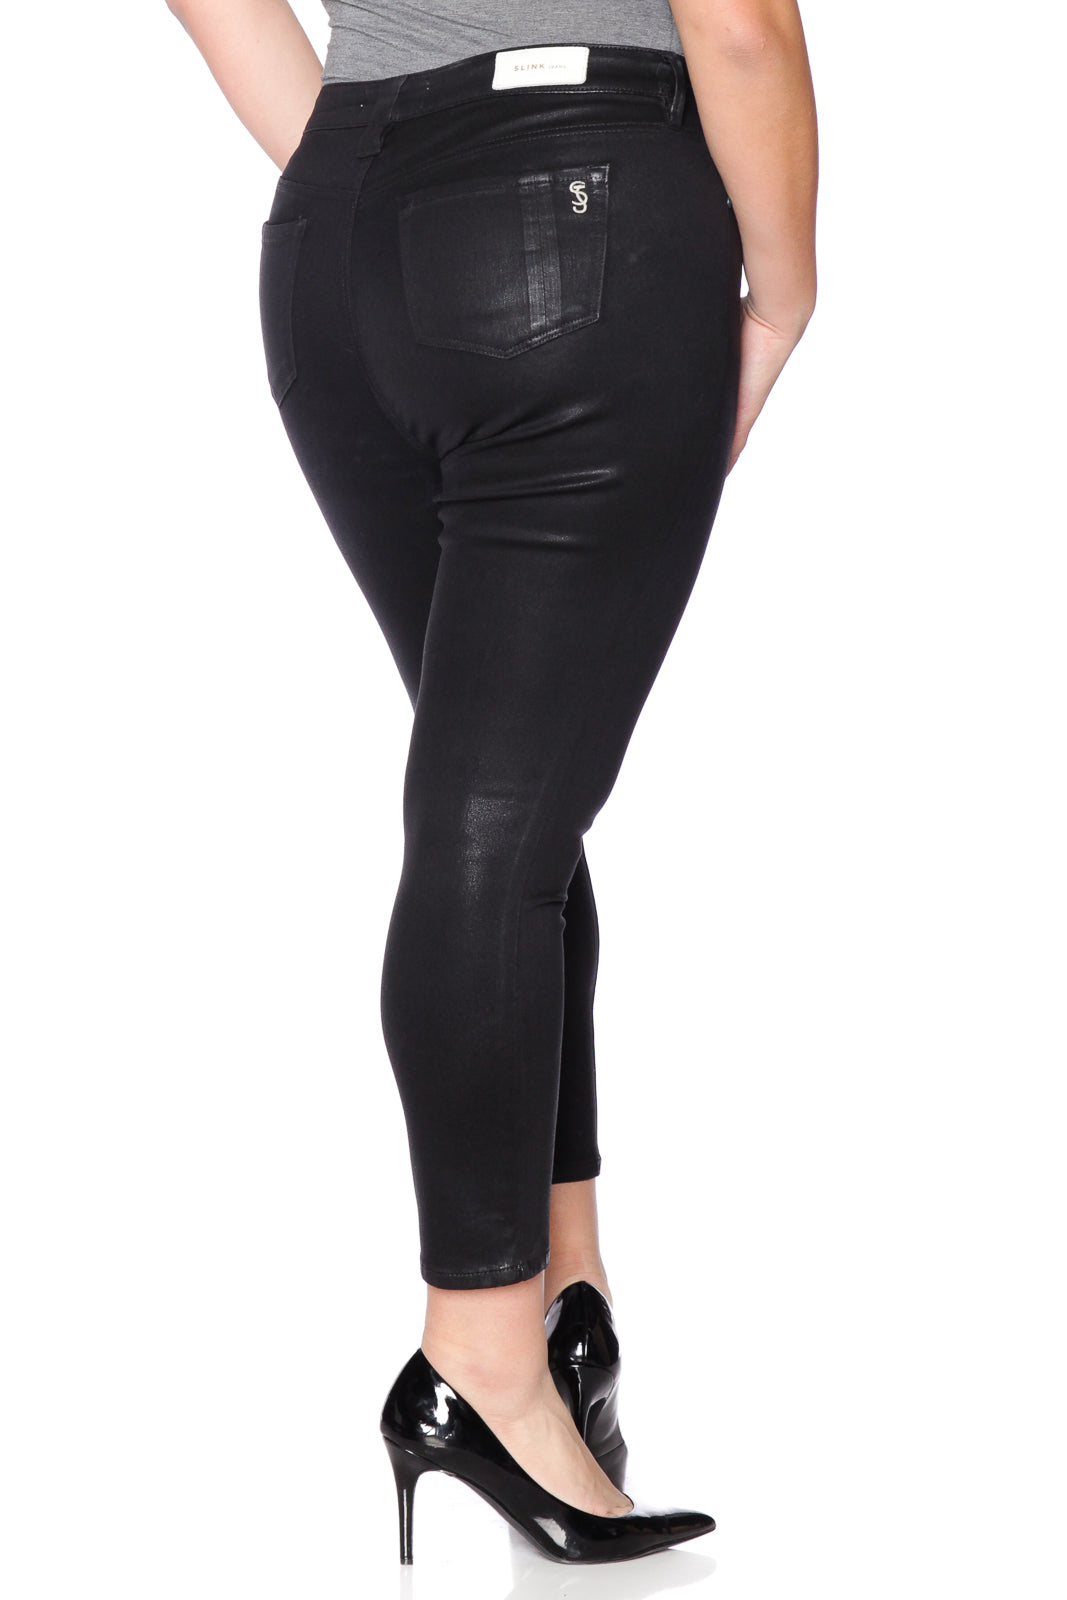 The Coated High Waist Skinny - ZOEY